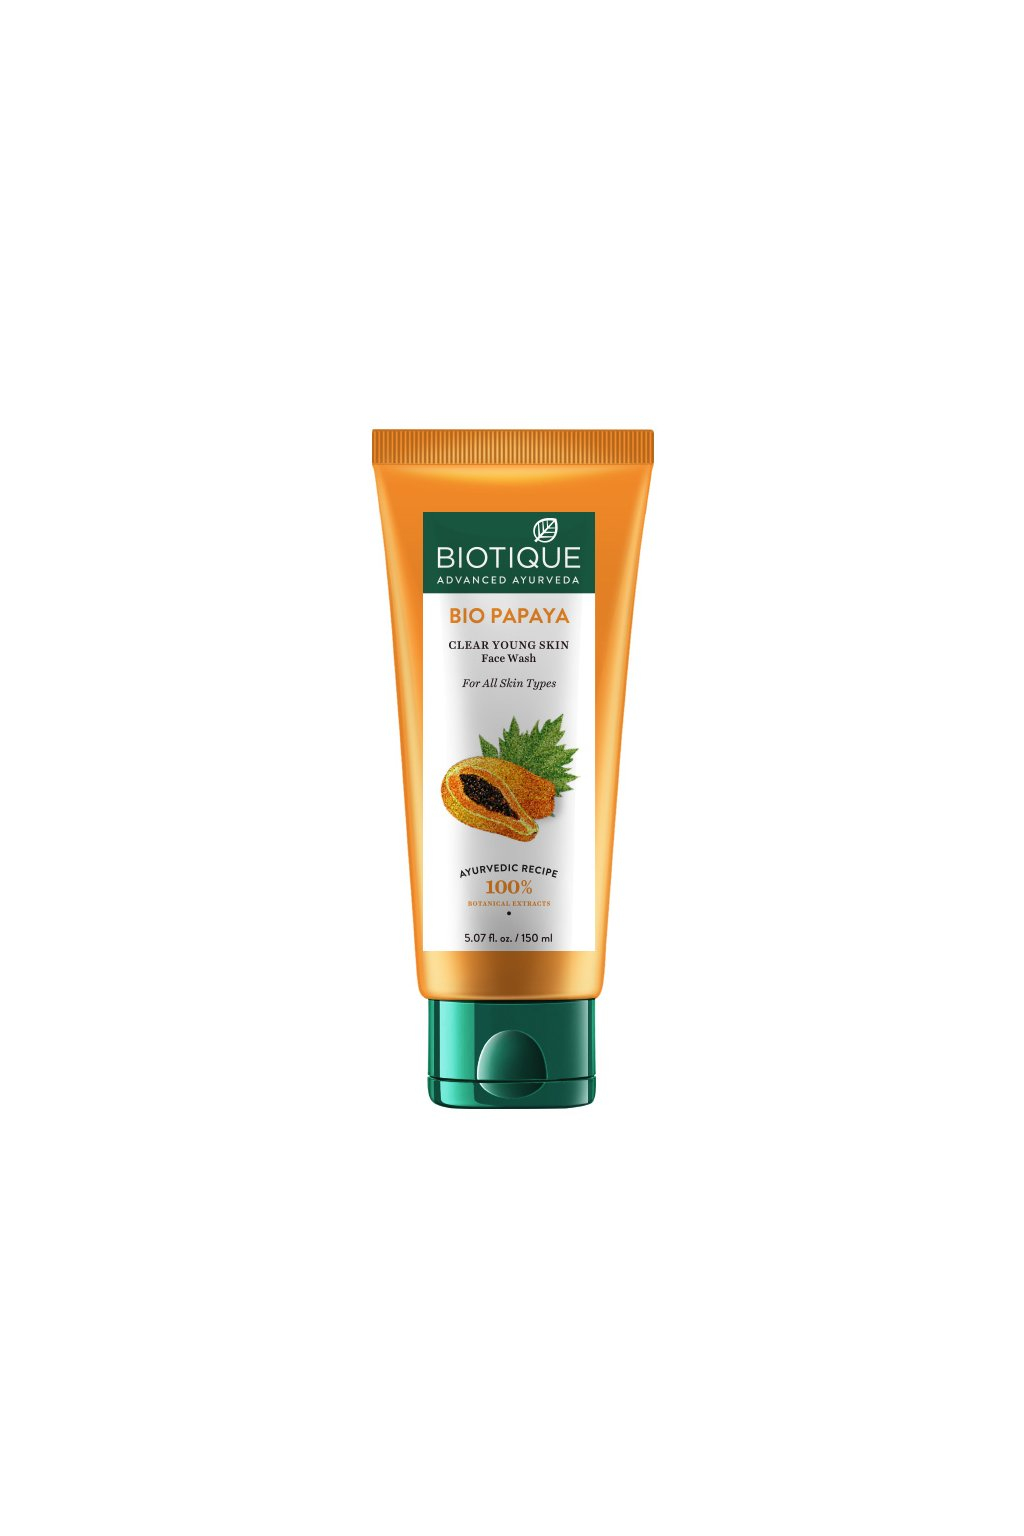 Bio papaya face scrub – 150 ml[3436]